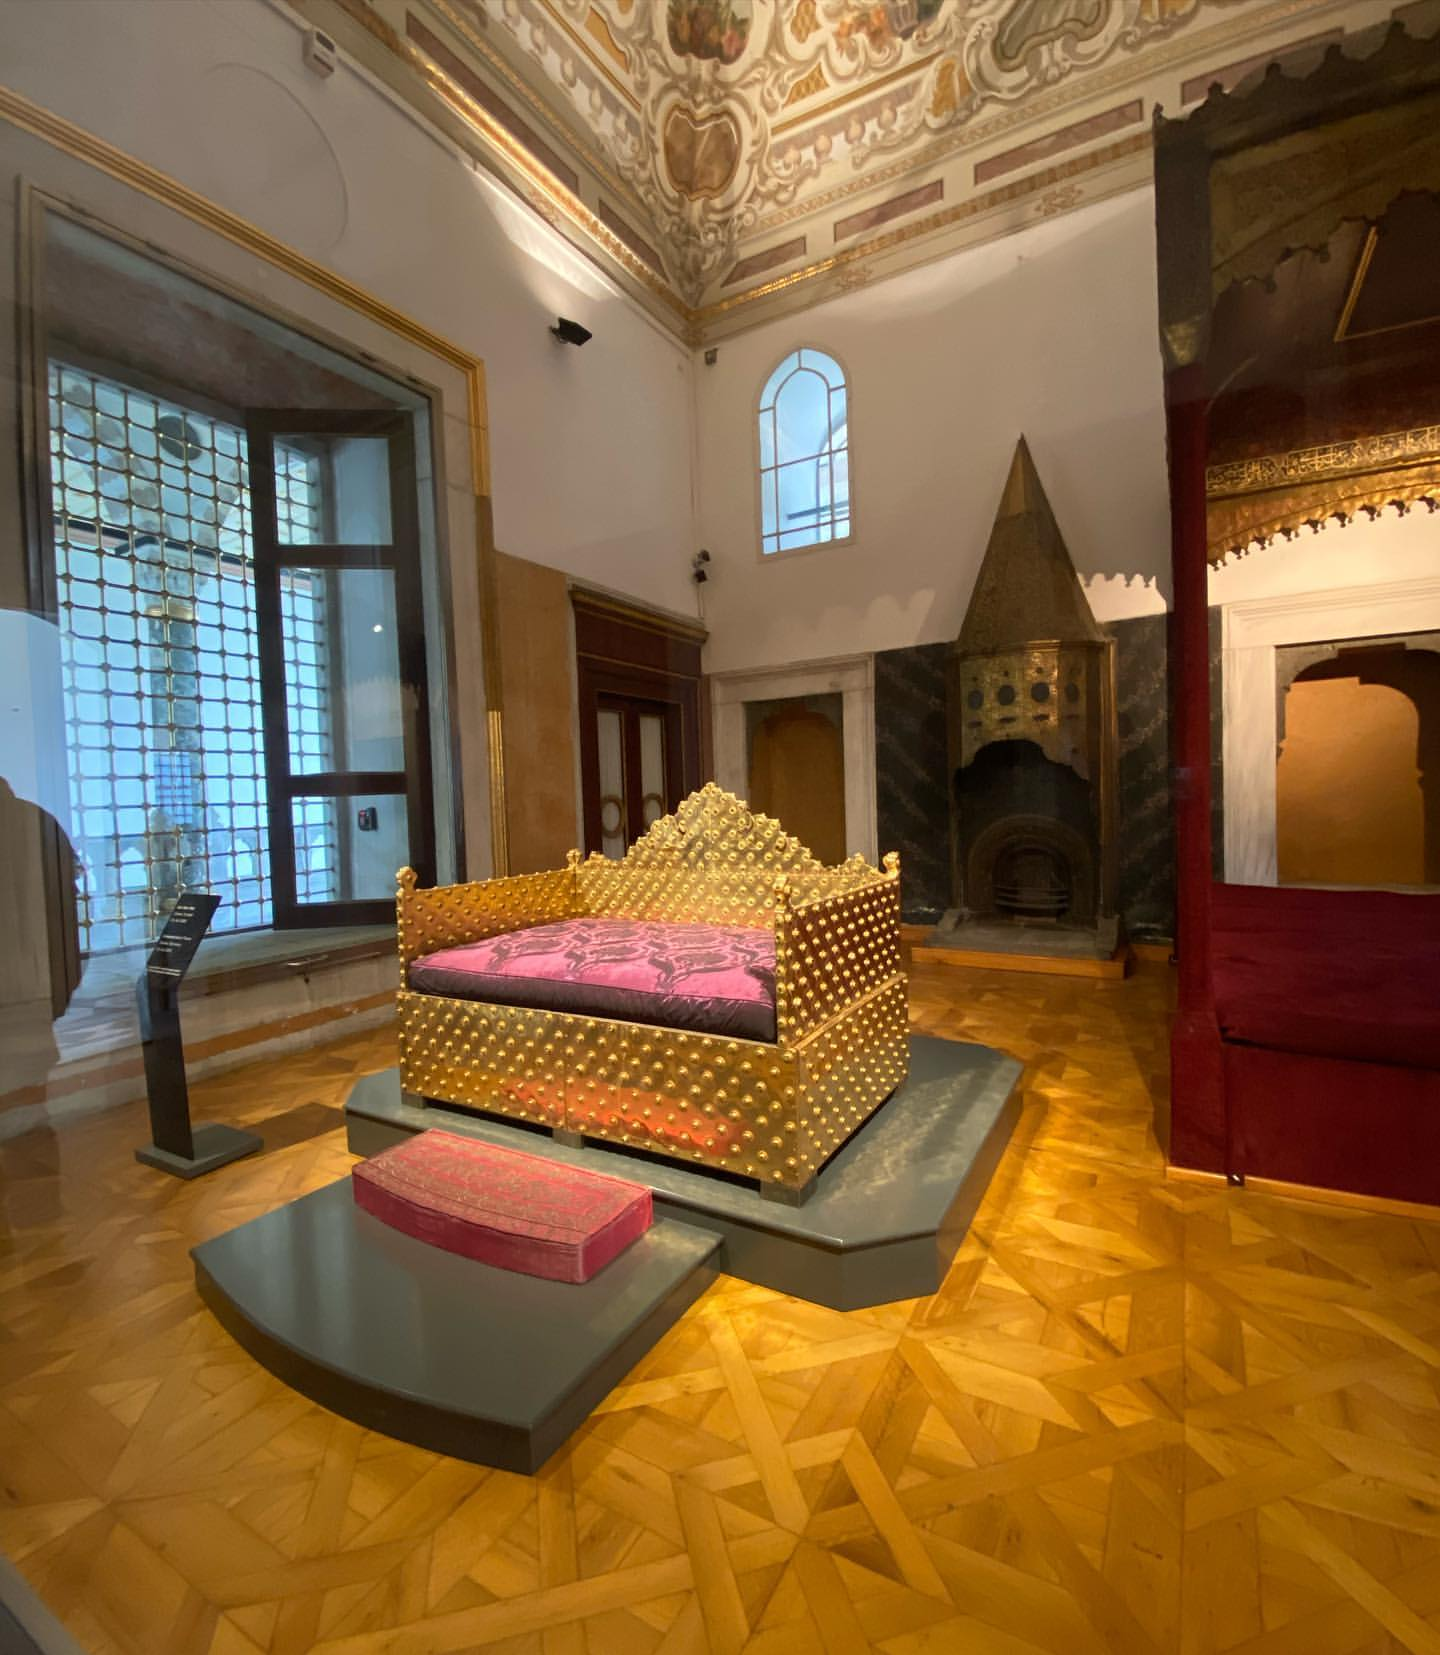 Topkapi Palace Istanbul: Detailed Travel Guide